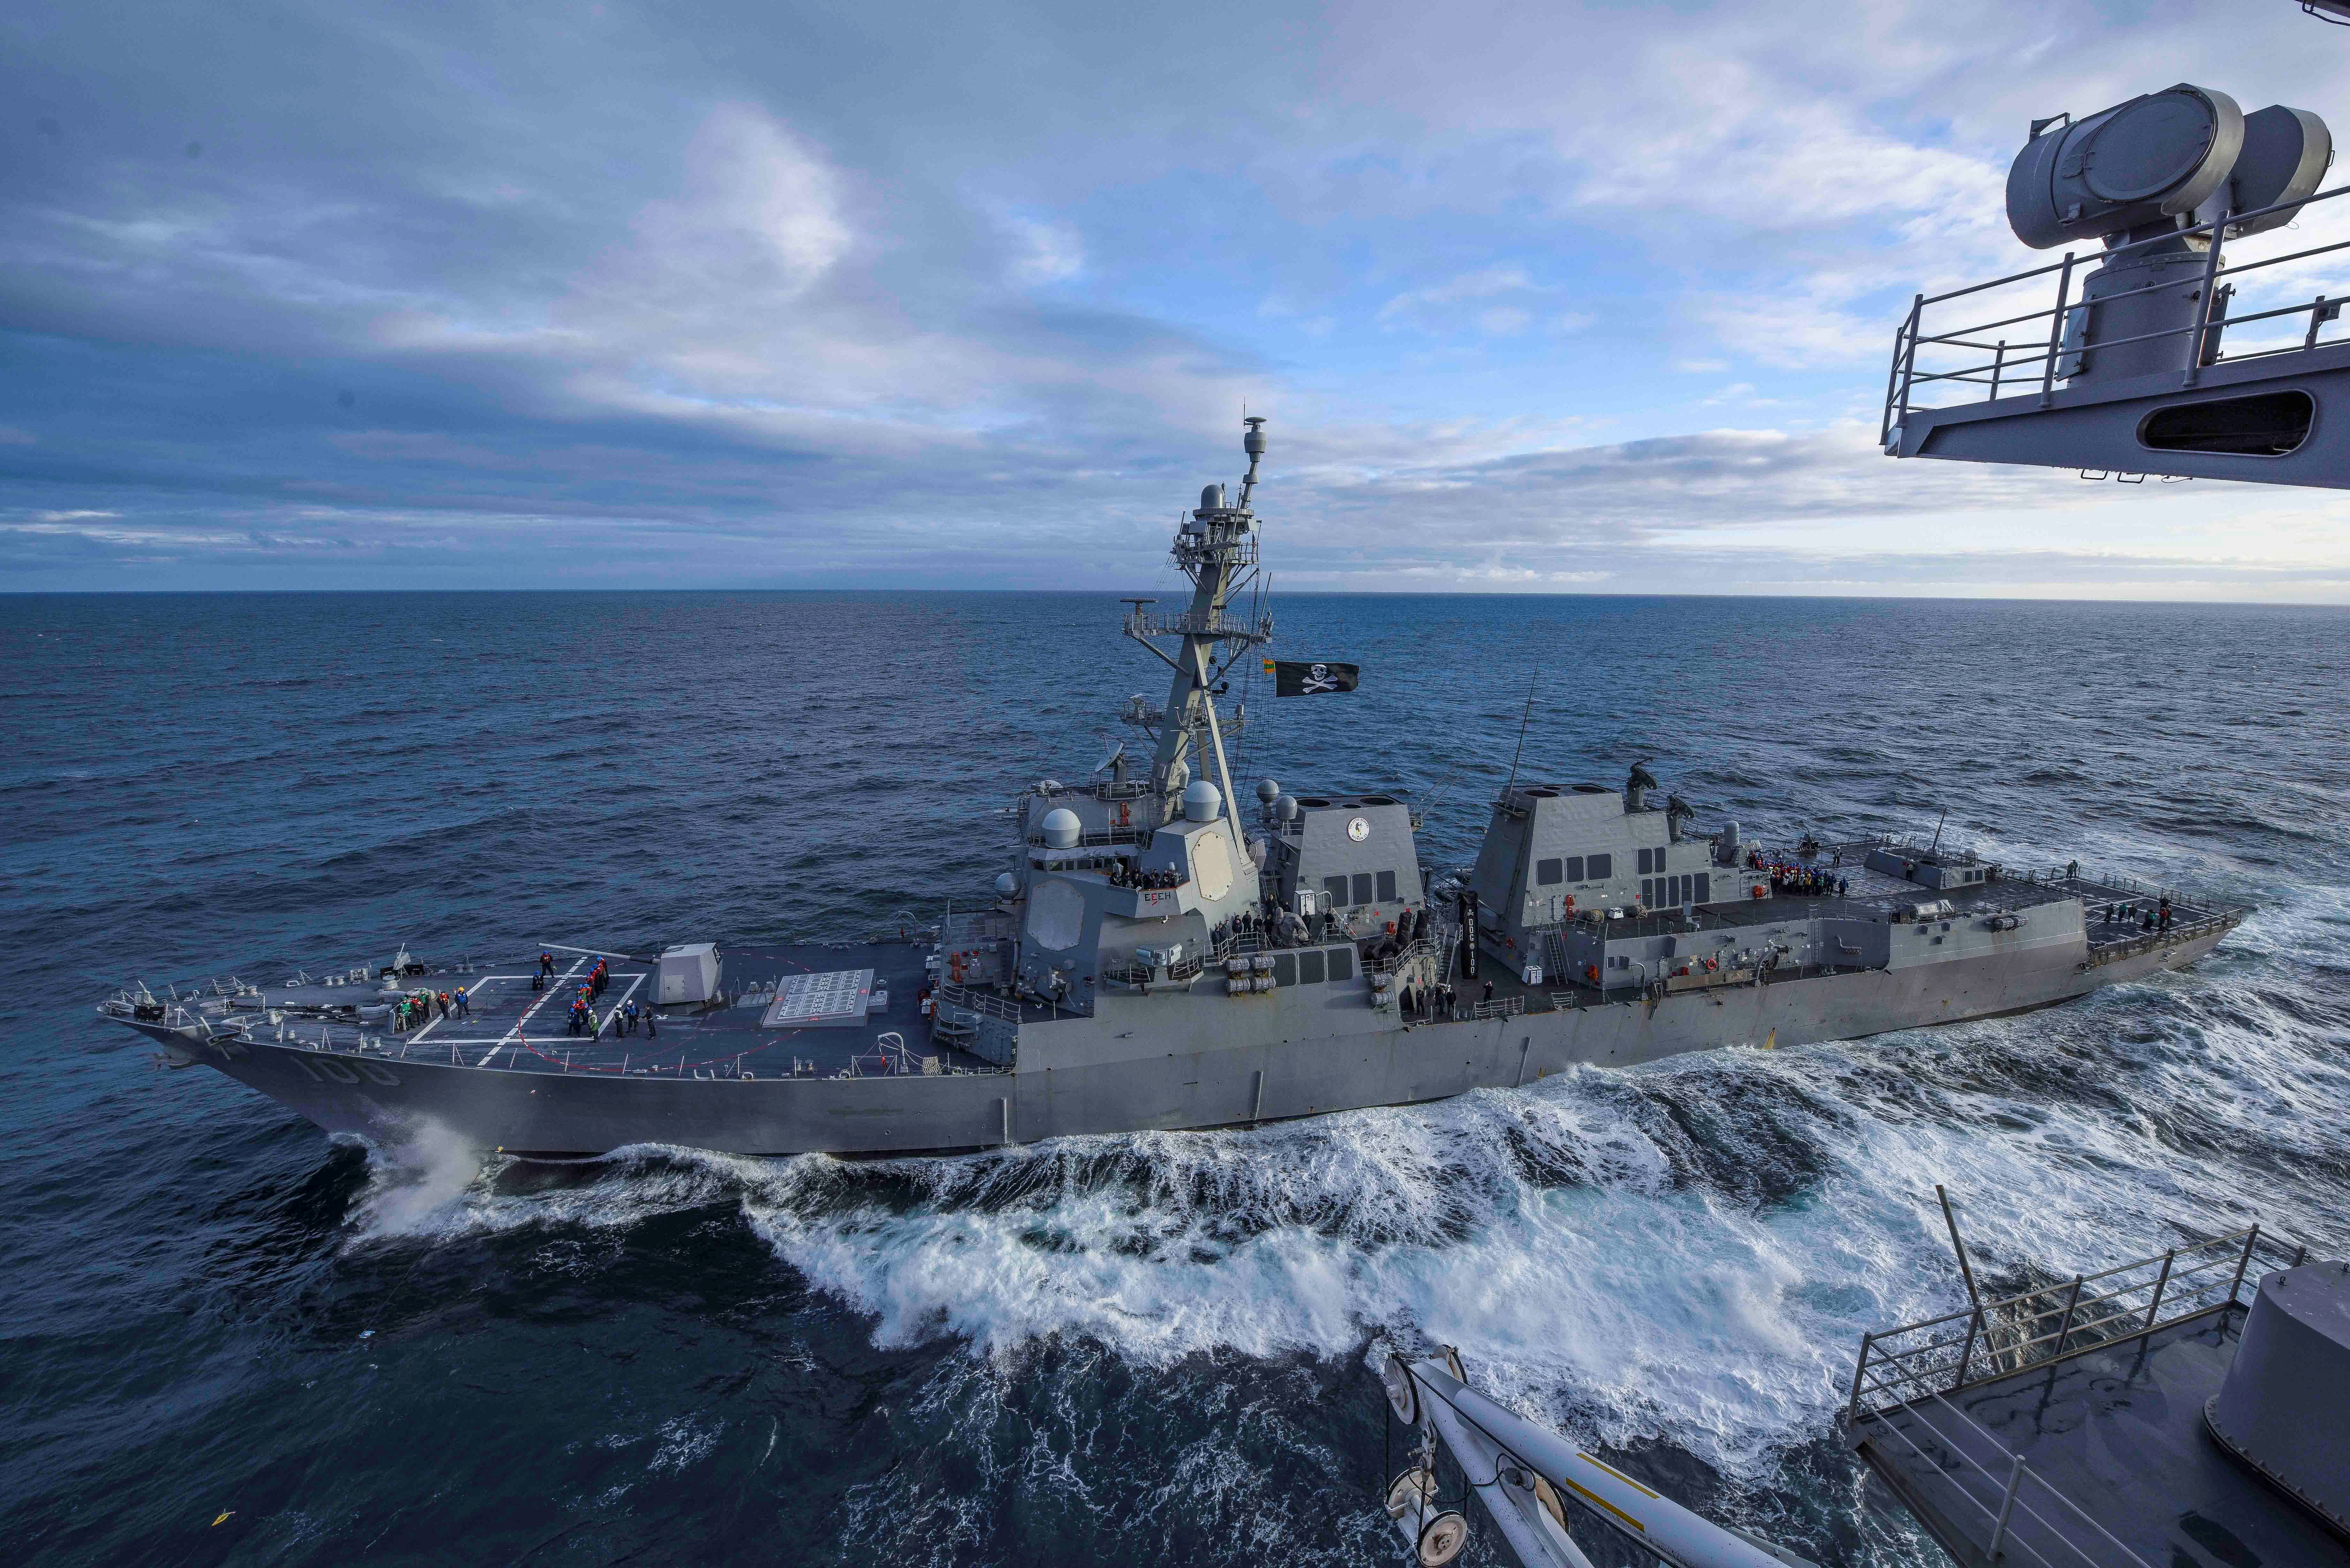 The U.S. Navy Arleigh Burke-class guided-missile destroyer USS Kidd transits alongside the aircraft carrier USS Theodore Roosevelt while participating in Exercise Northern Edge 2019 in the Gulf of Alaska May 16, 2019. Picture taken May 16, 2019. U.S. Navy/Mass Communication Specialist 3rd Class Sean Lynch/Handout via REUTERS./File Photo